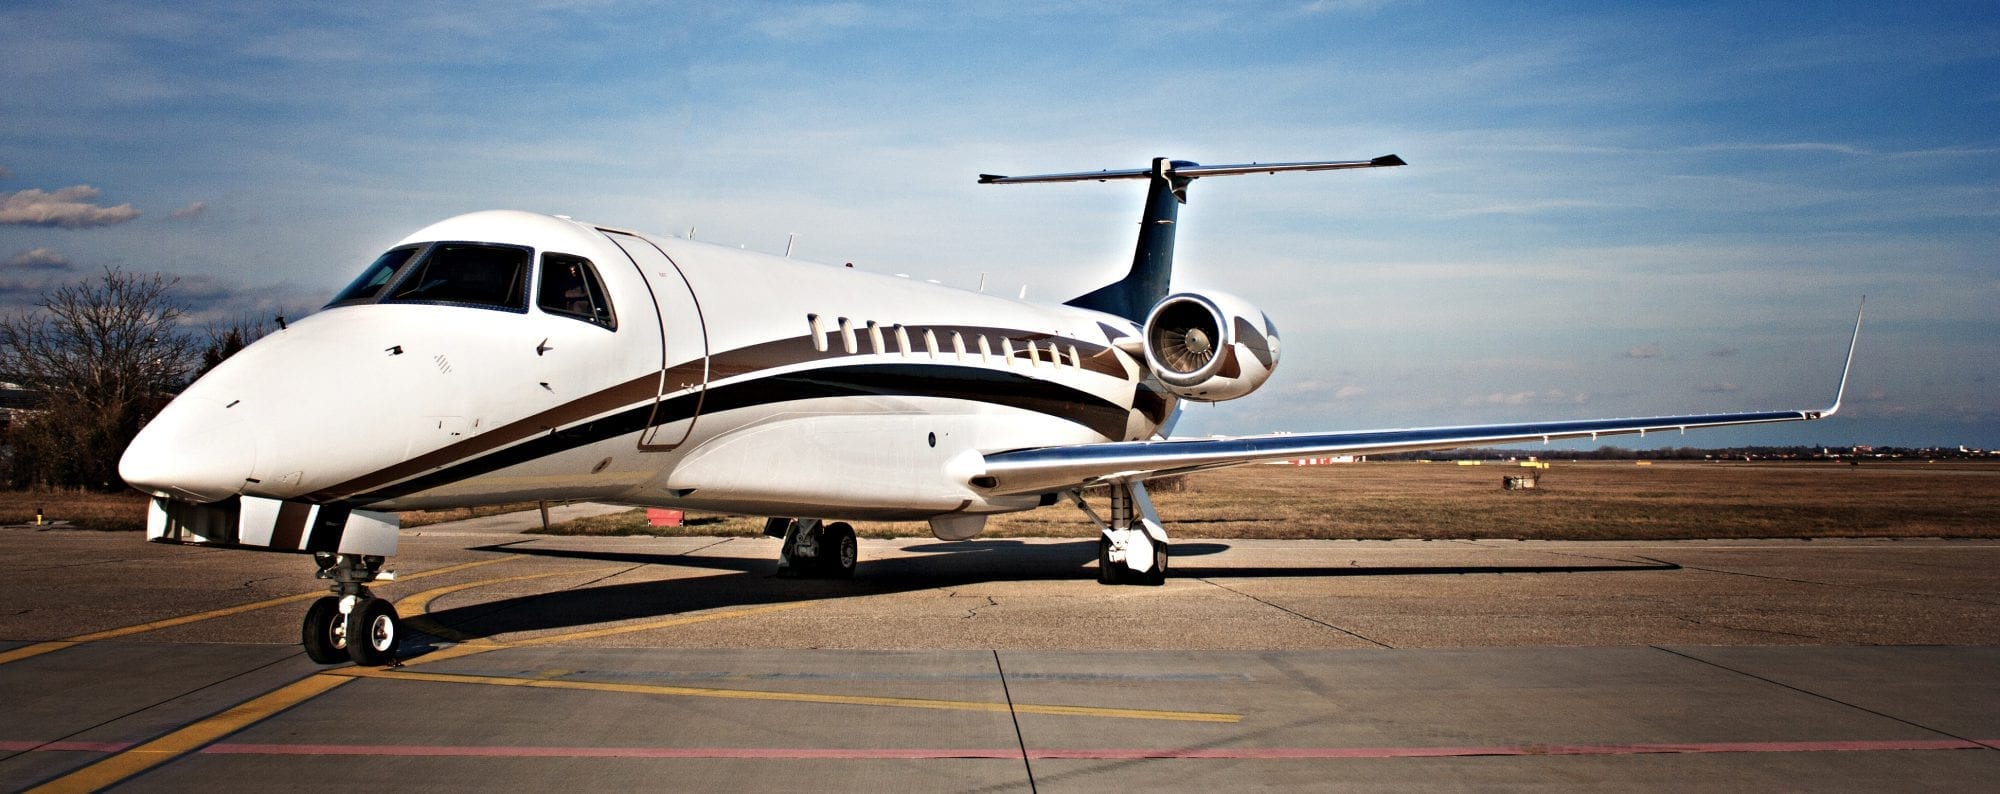 embraer legacy 600 aircraft for sale